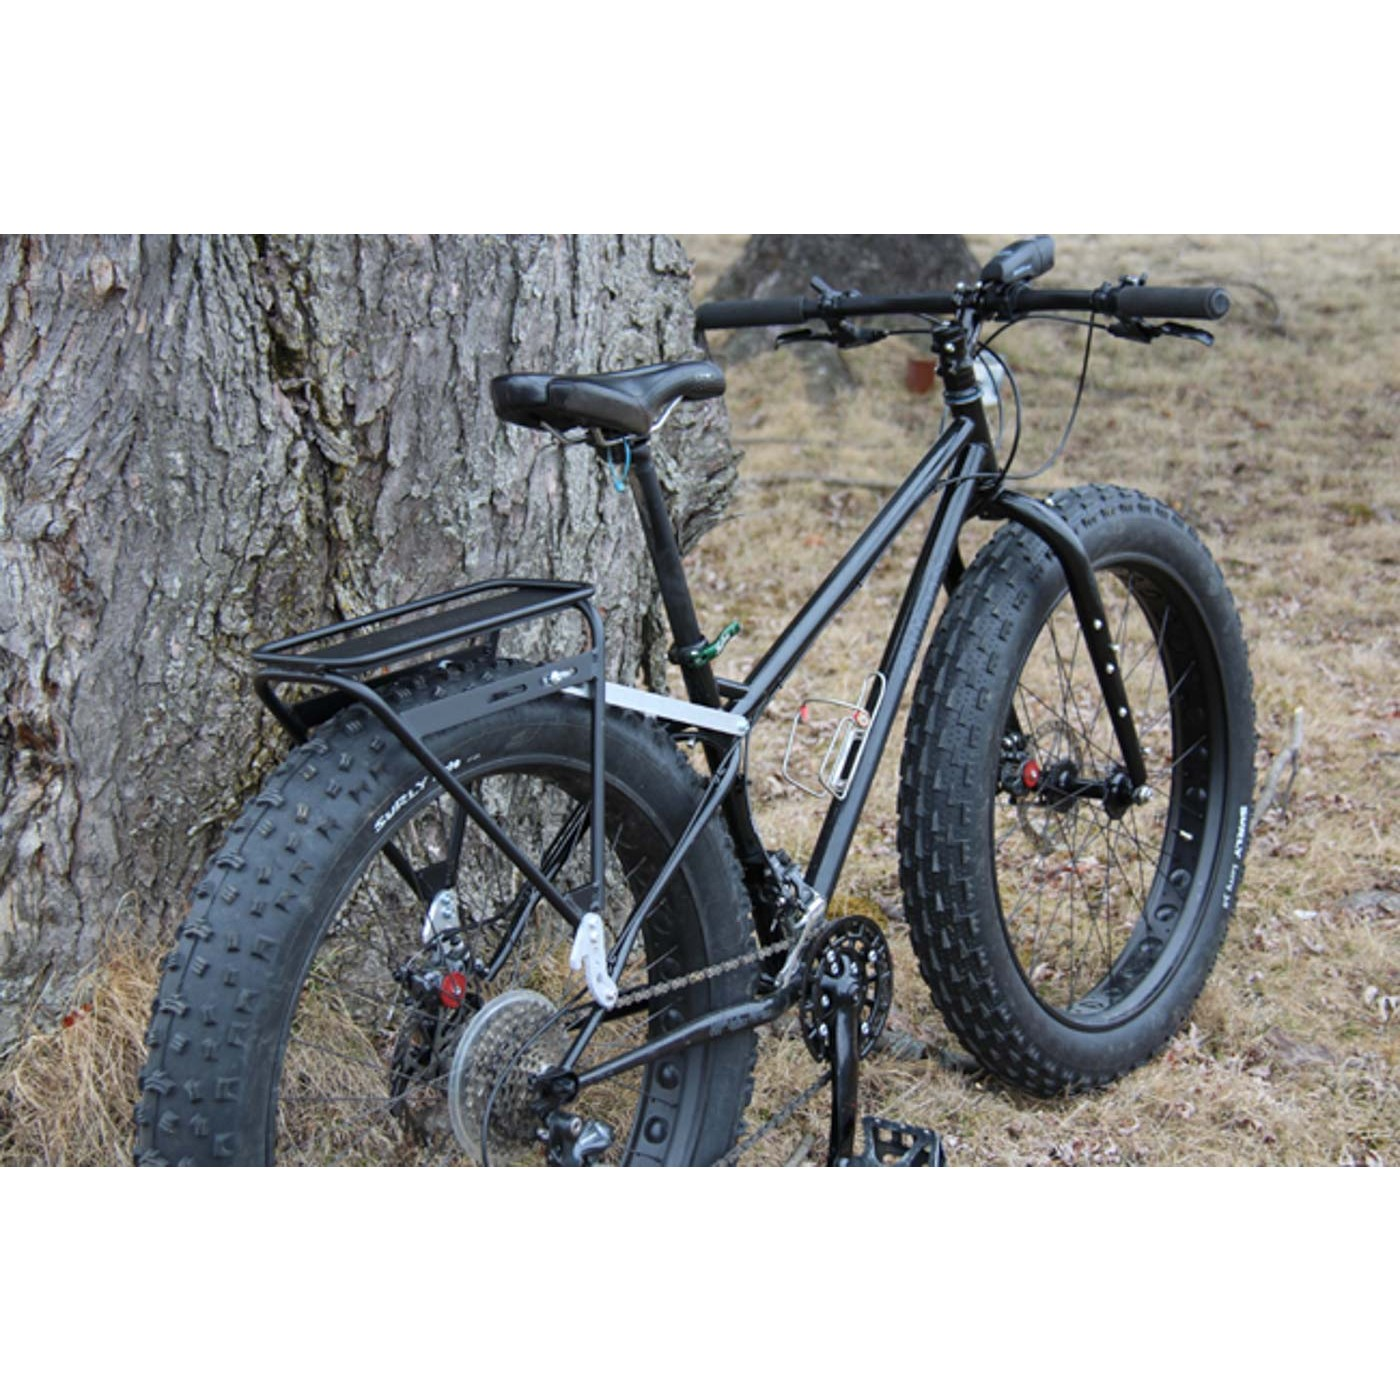 fat bike rear pannier racks from old man mountain. Black Bedroom Furniture Sets. Home Design Ideas